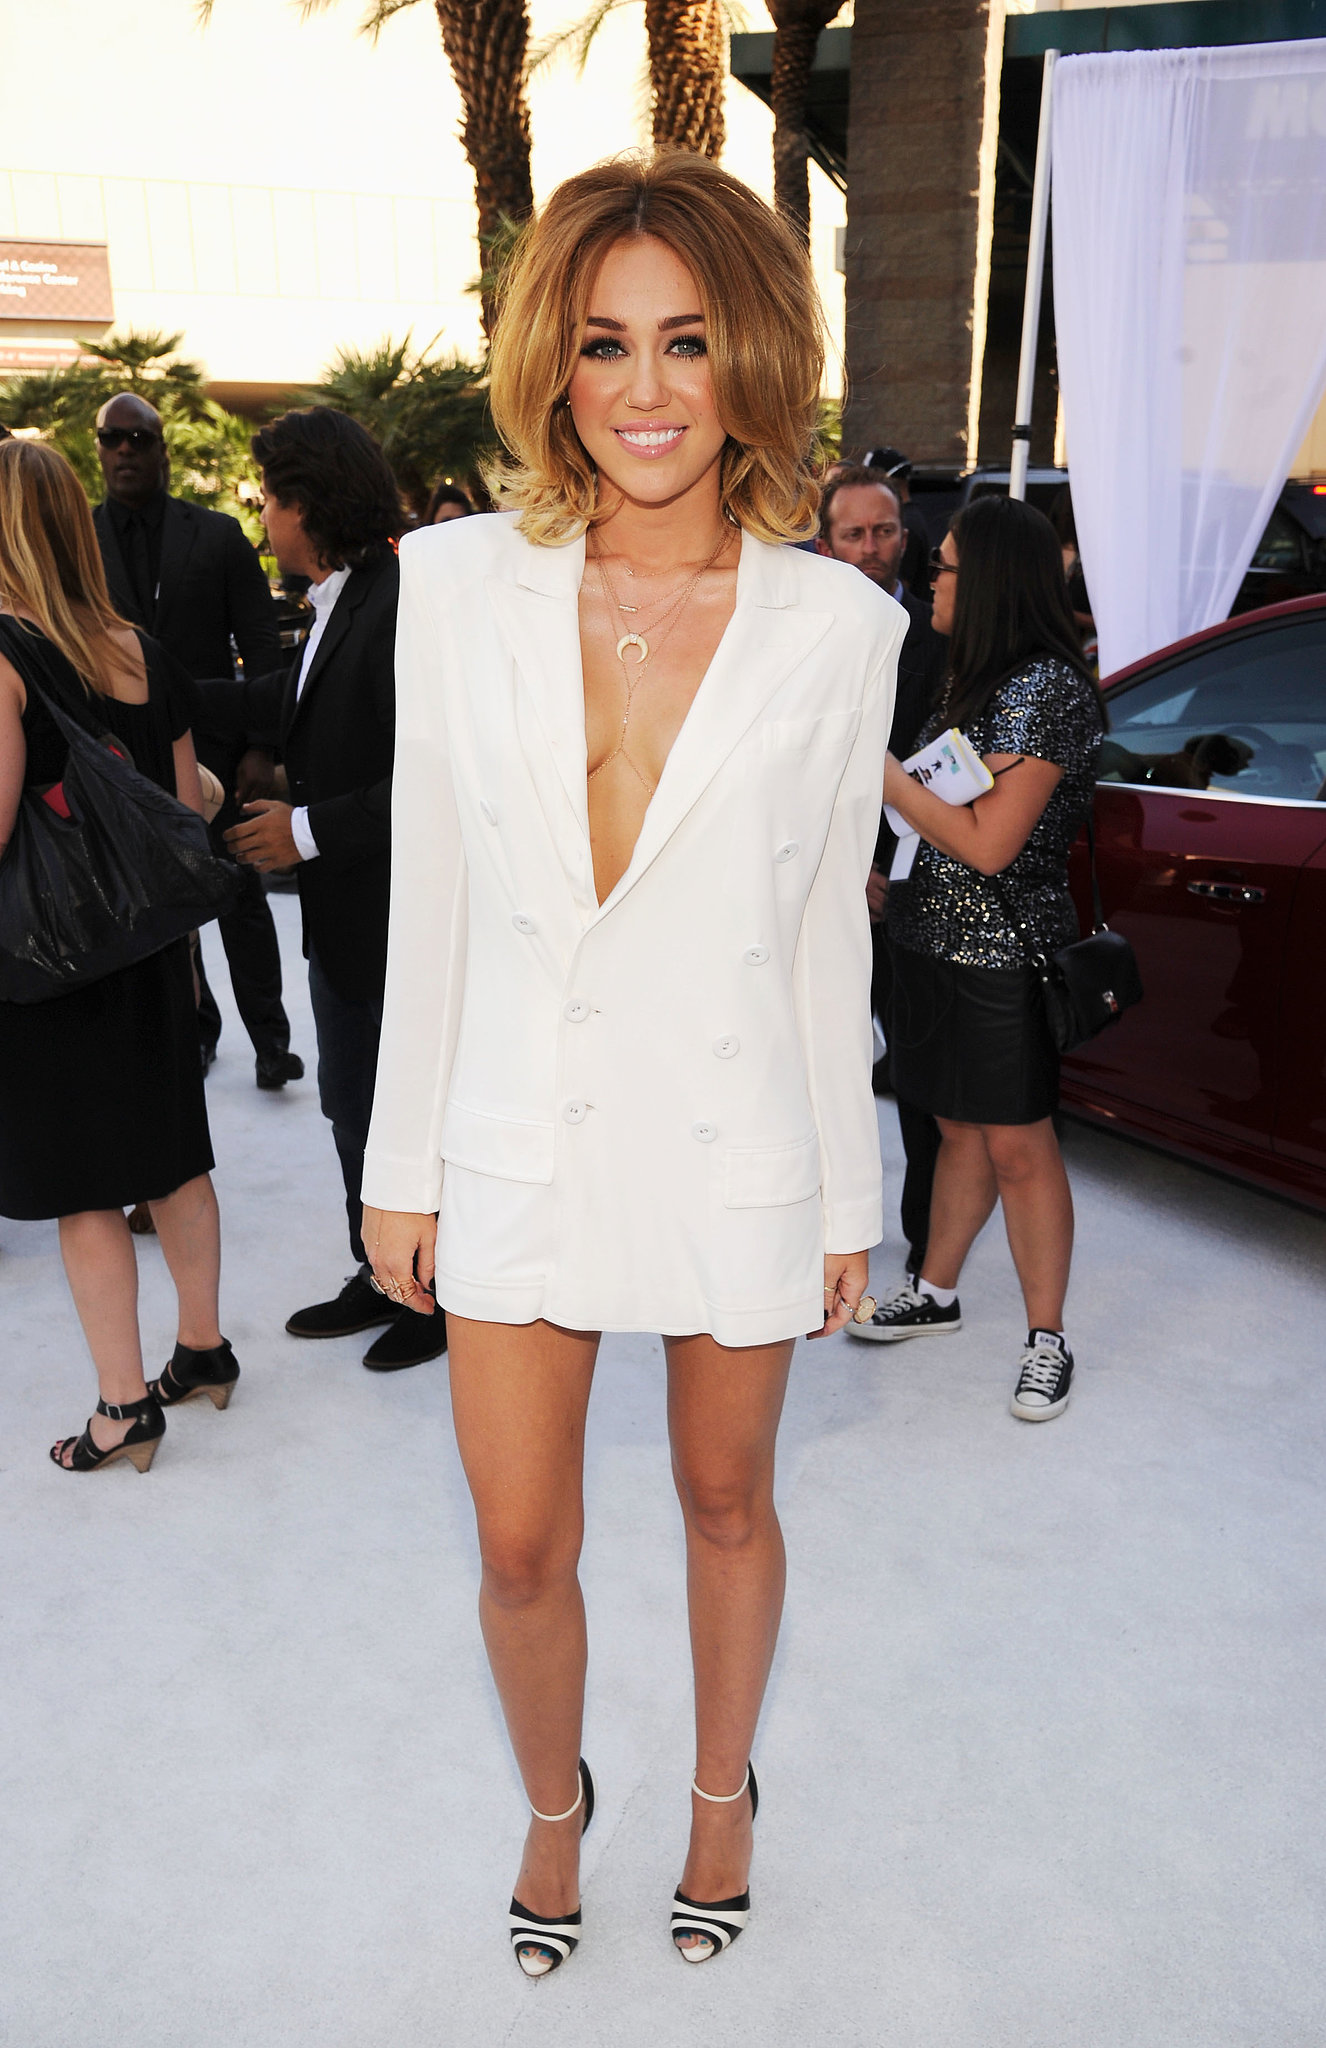 Miley Cyrus wore nothing but a white blazer to the May 2012 Billboard Music Awards.